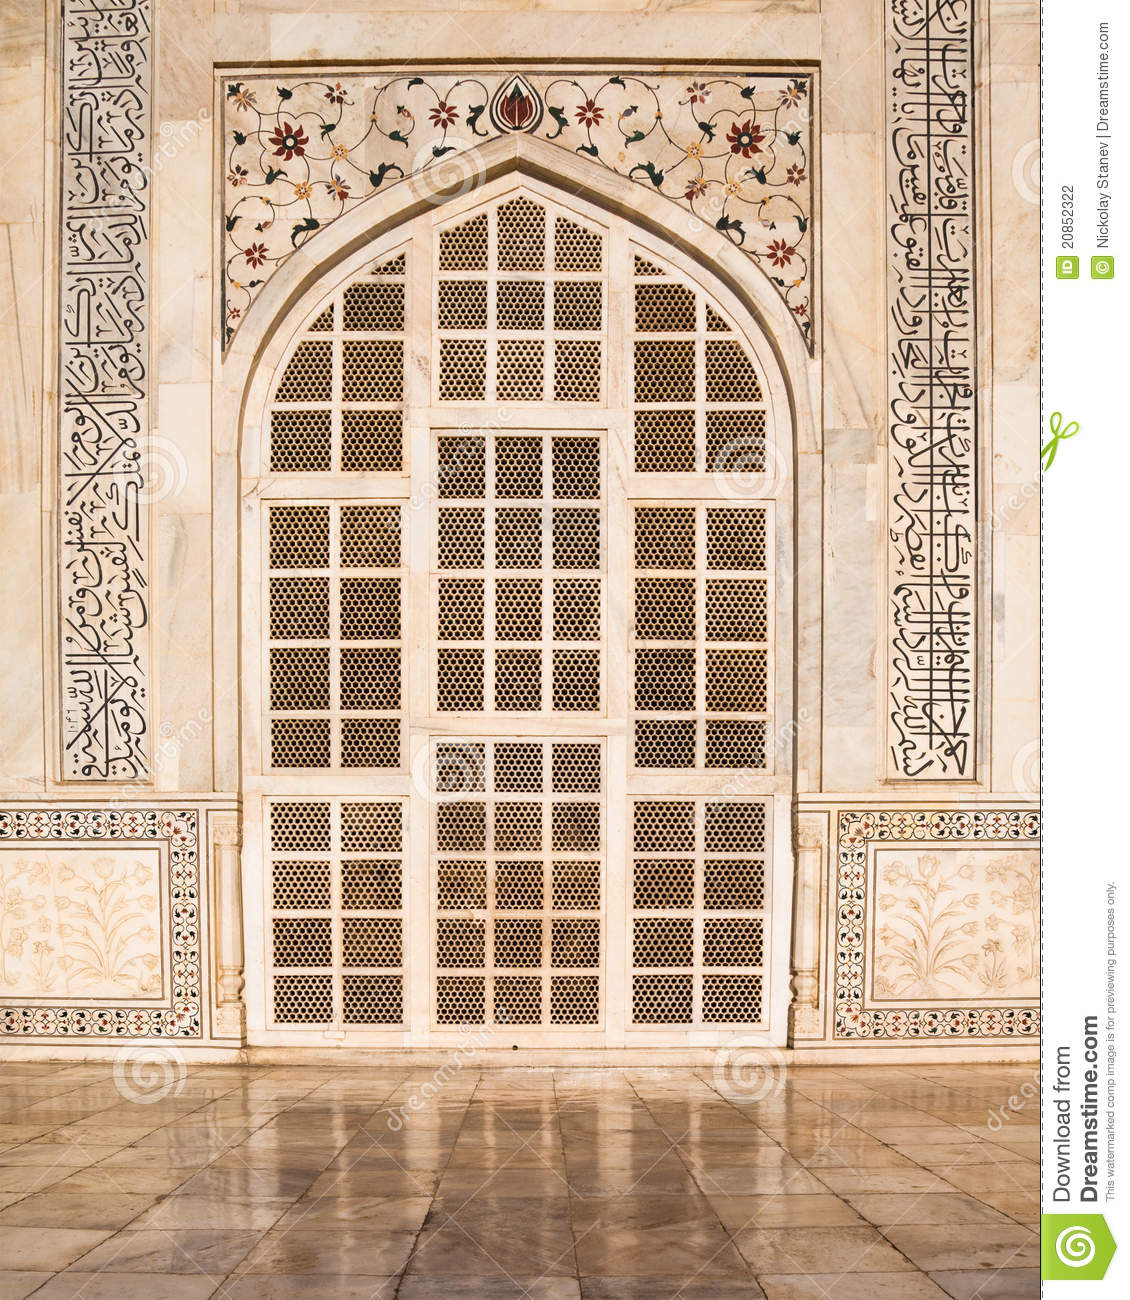 Taj Mahal Door Stock Photo Image Of India Heritage